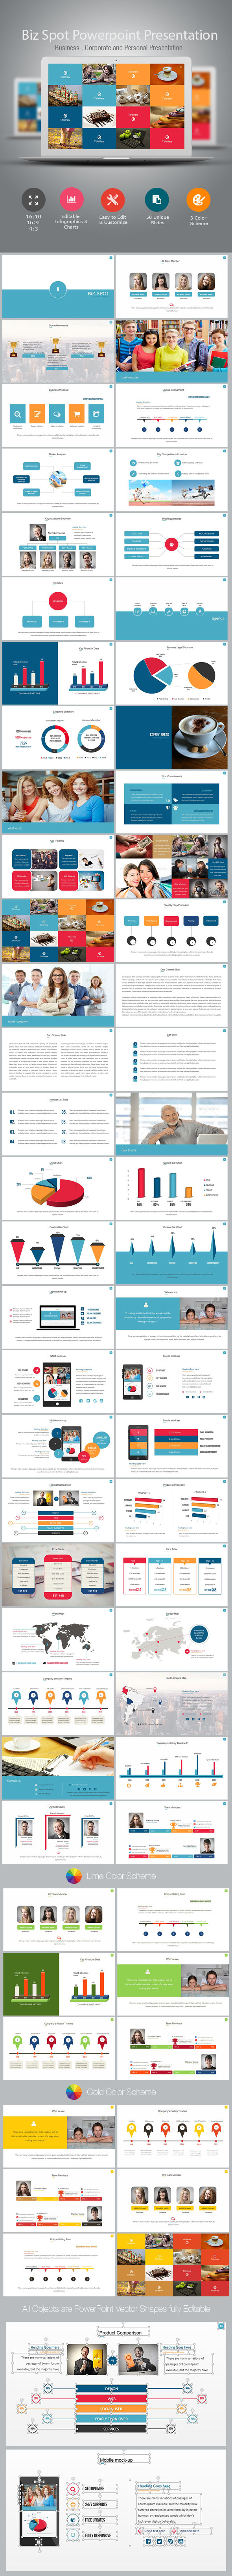 Biz Spot Power Point Presentation - PowerPoint Templates Presentation Templates